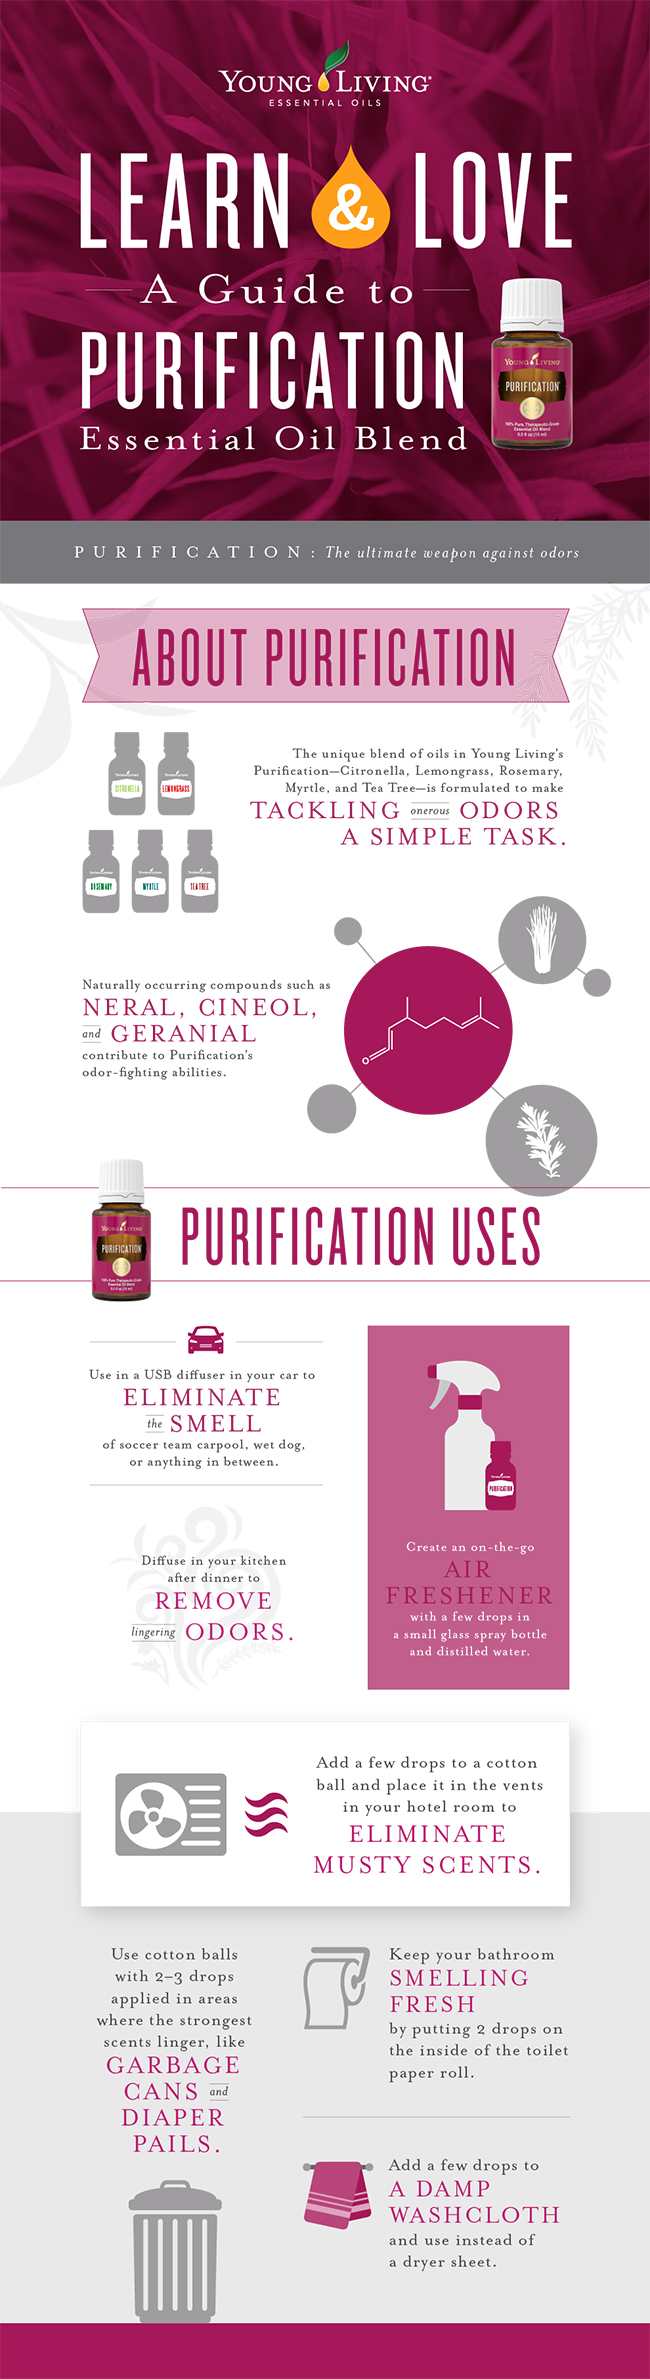 Purification essential oil learn and love